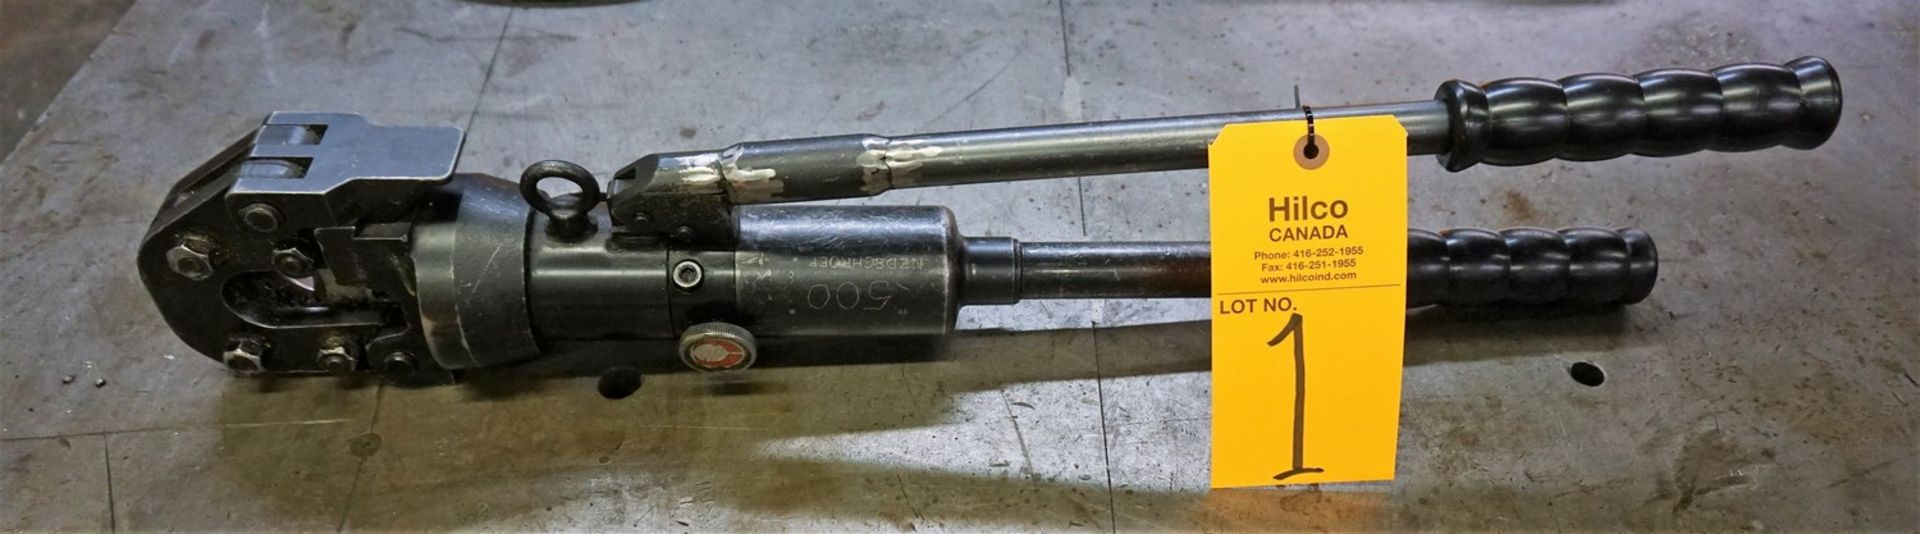 Lot 1 - Standard Hydraulic Manual Cable Cutter